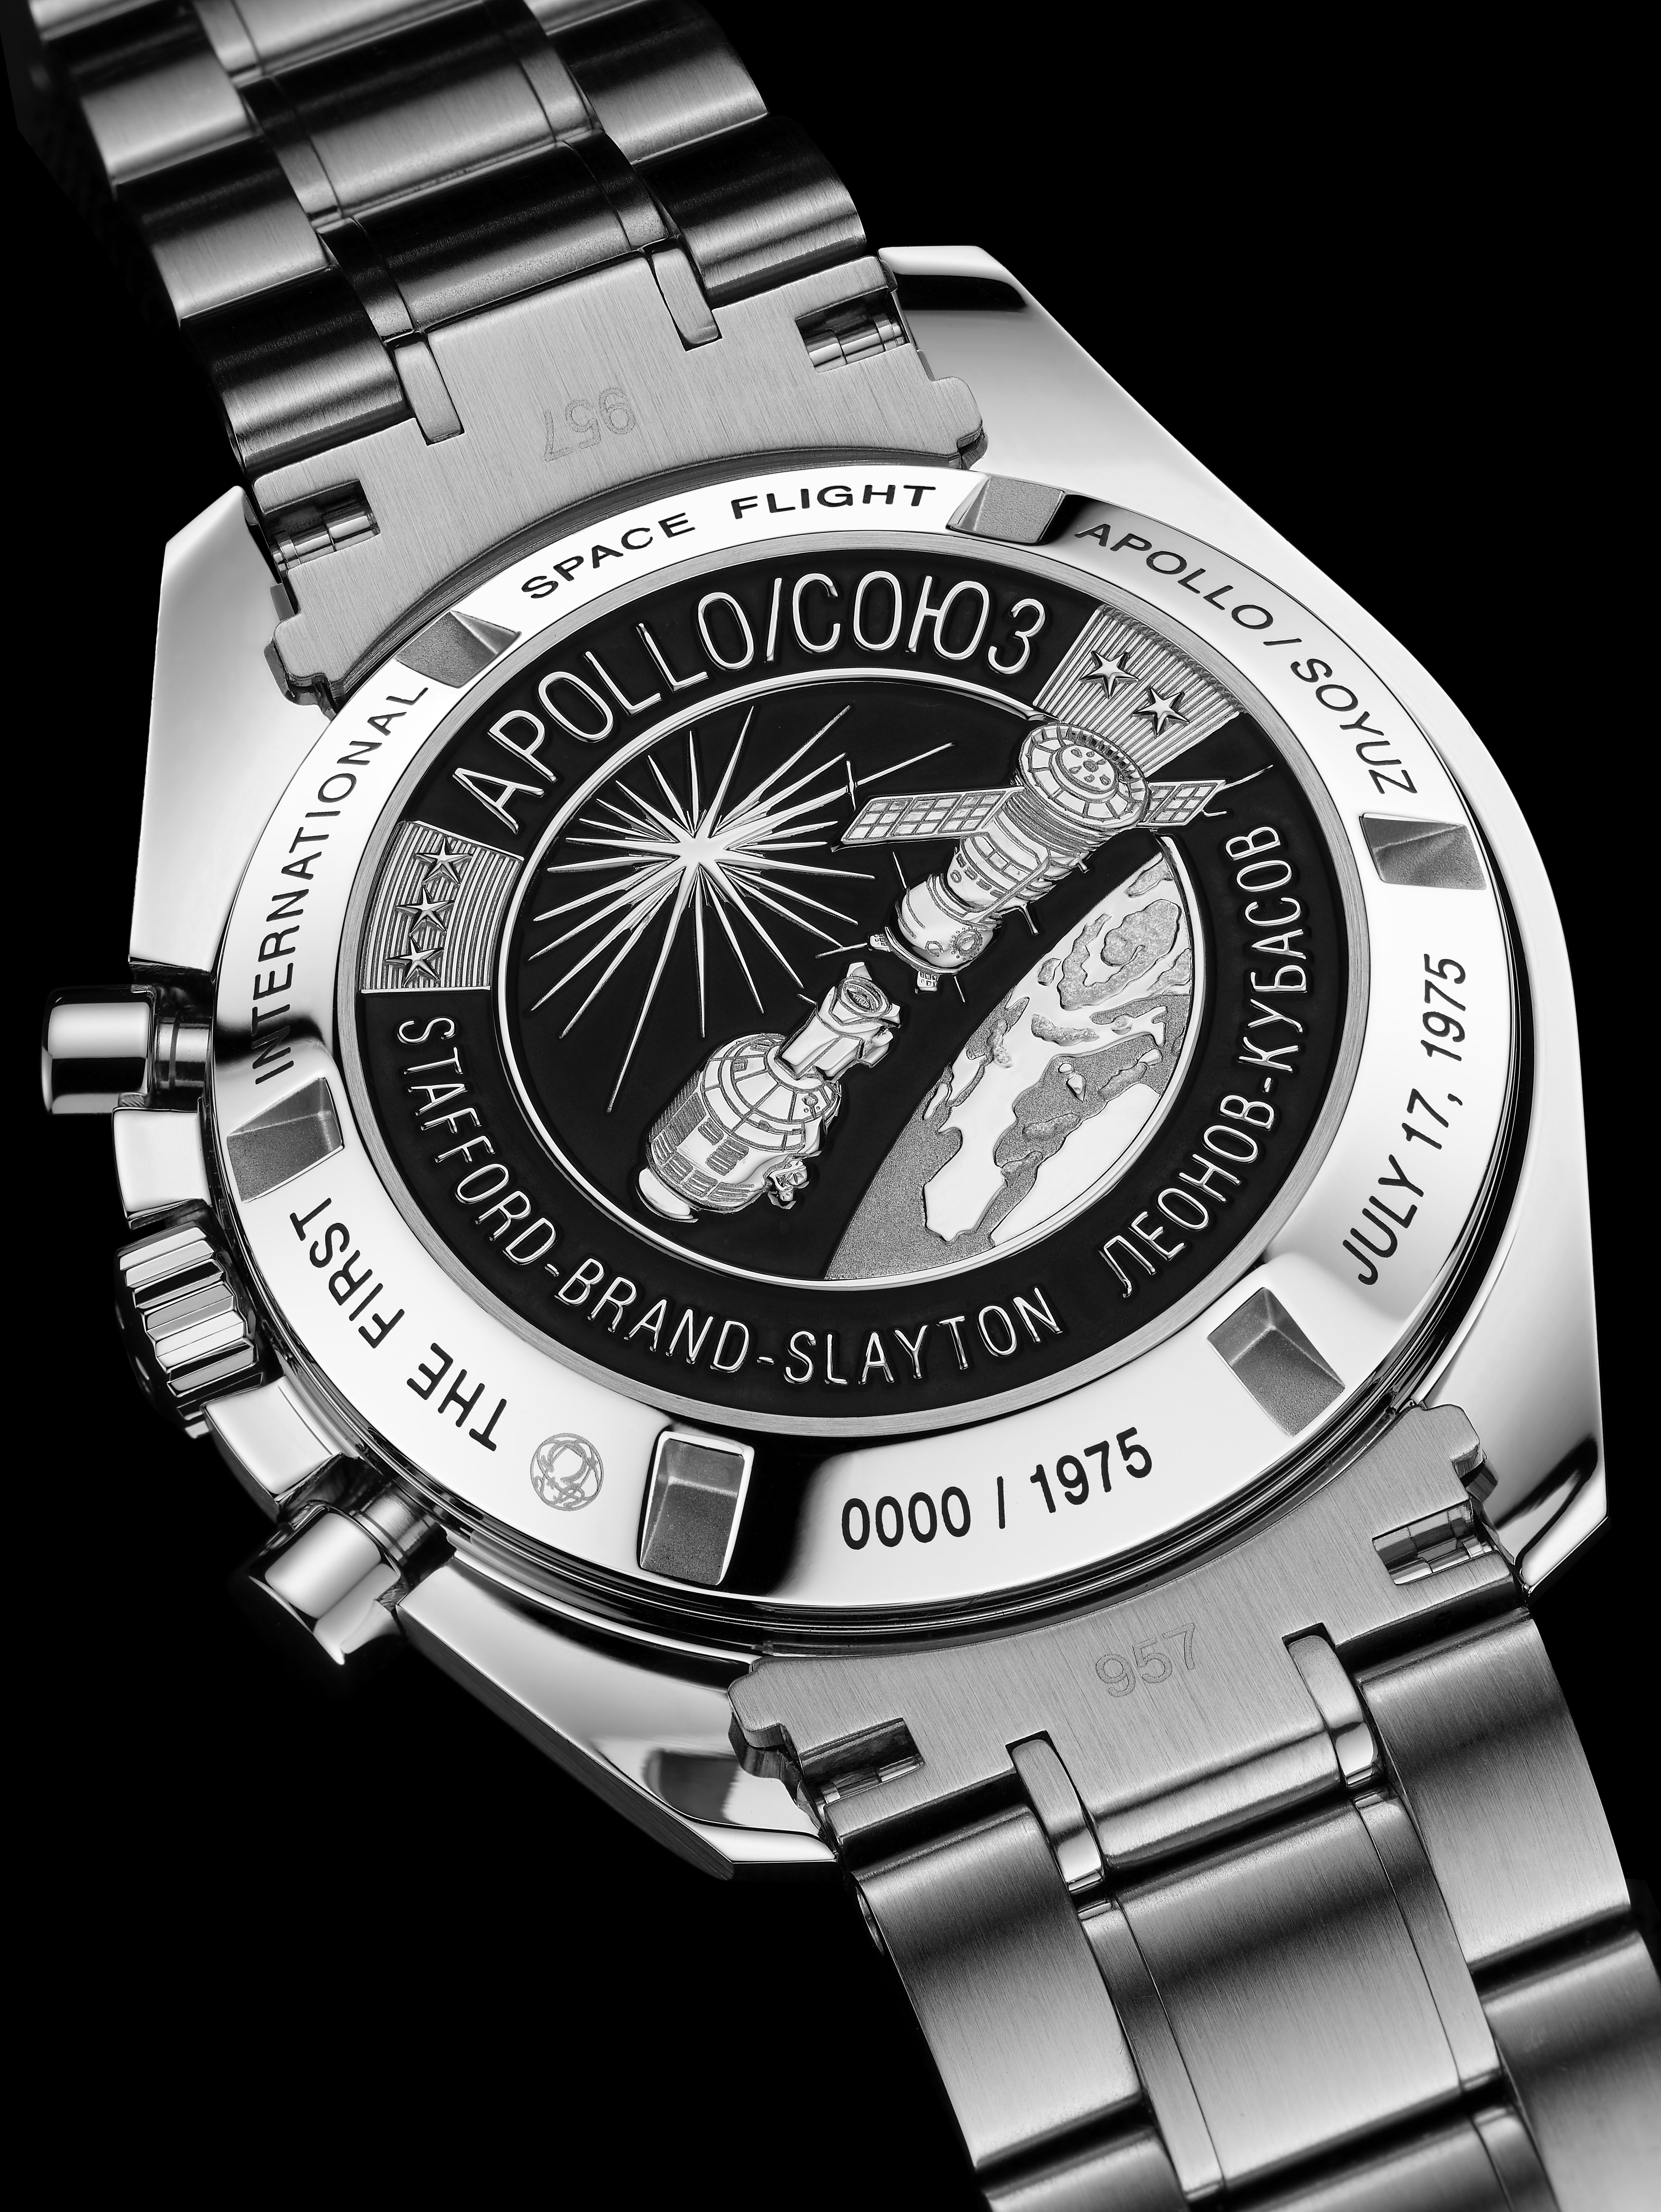 [Releases] Omega Speedmaster space watches - collectSPACE ...